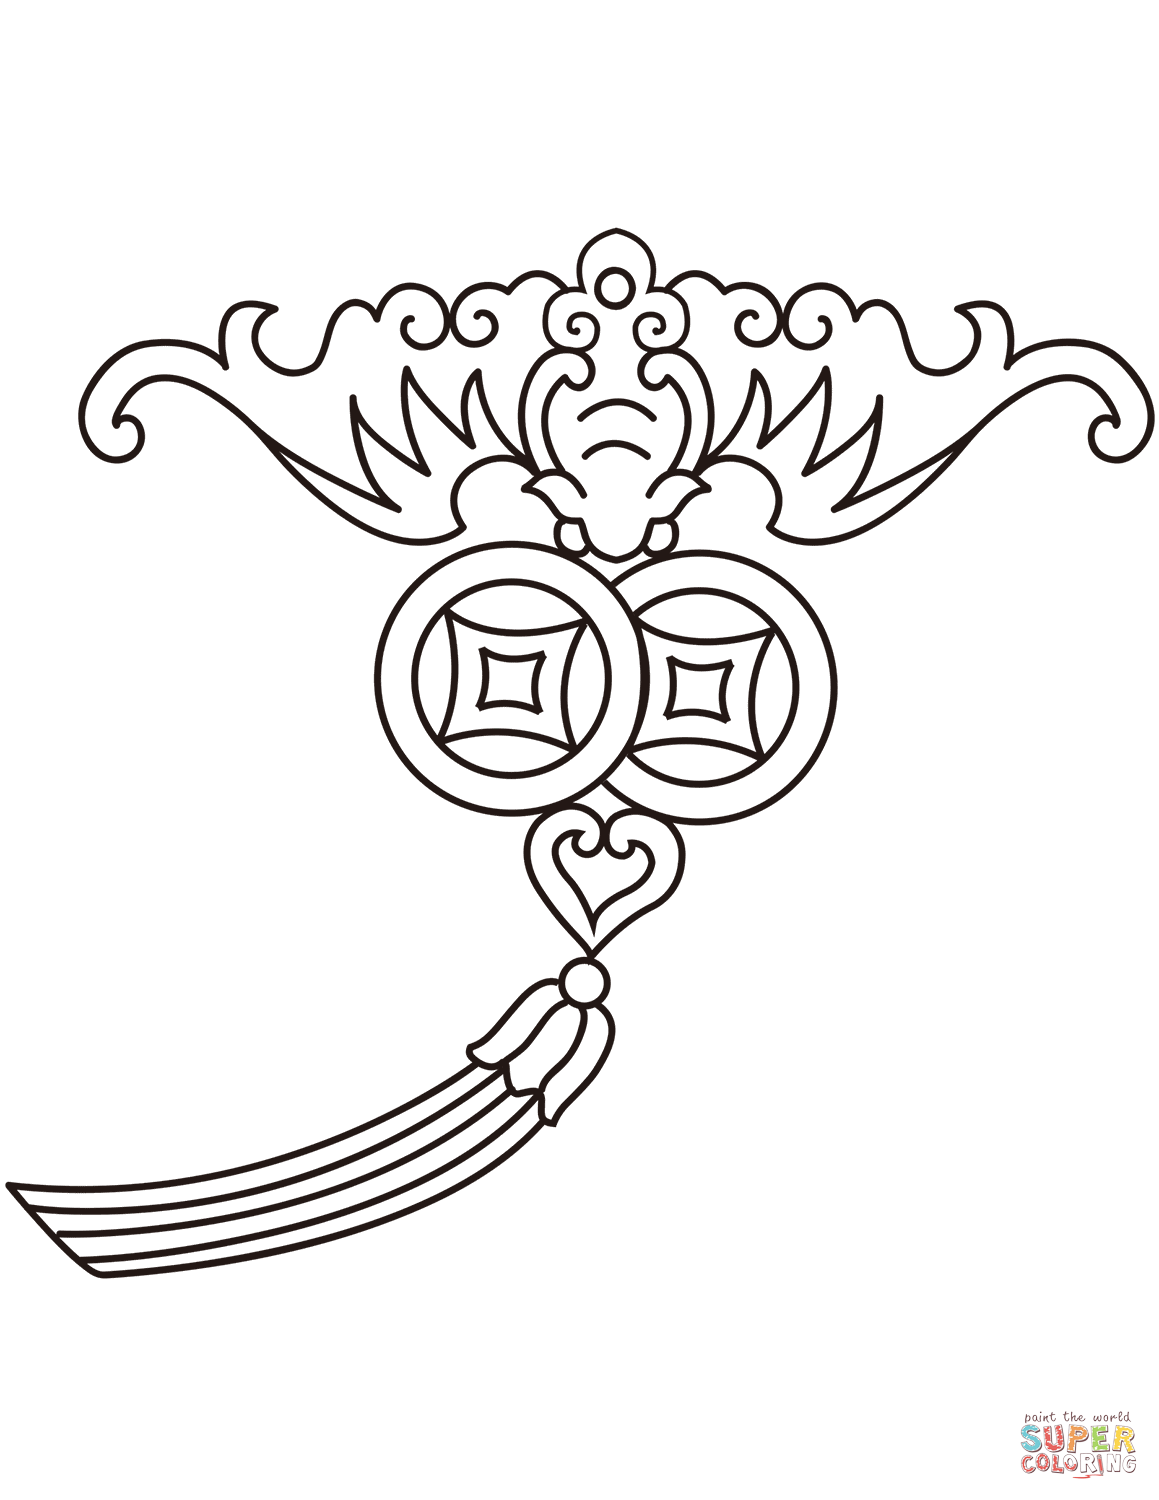 Chinese Traditional Auspicious Pattern coloring page